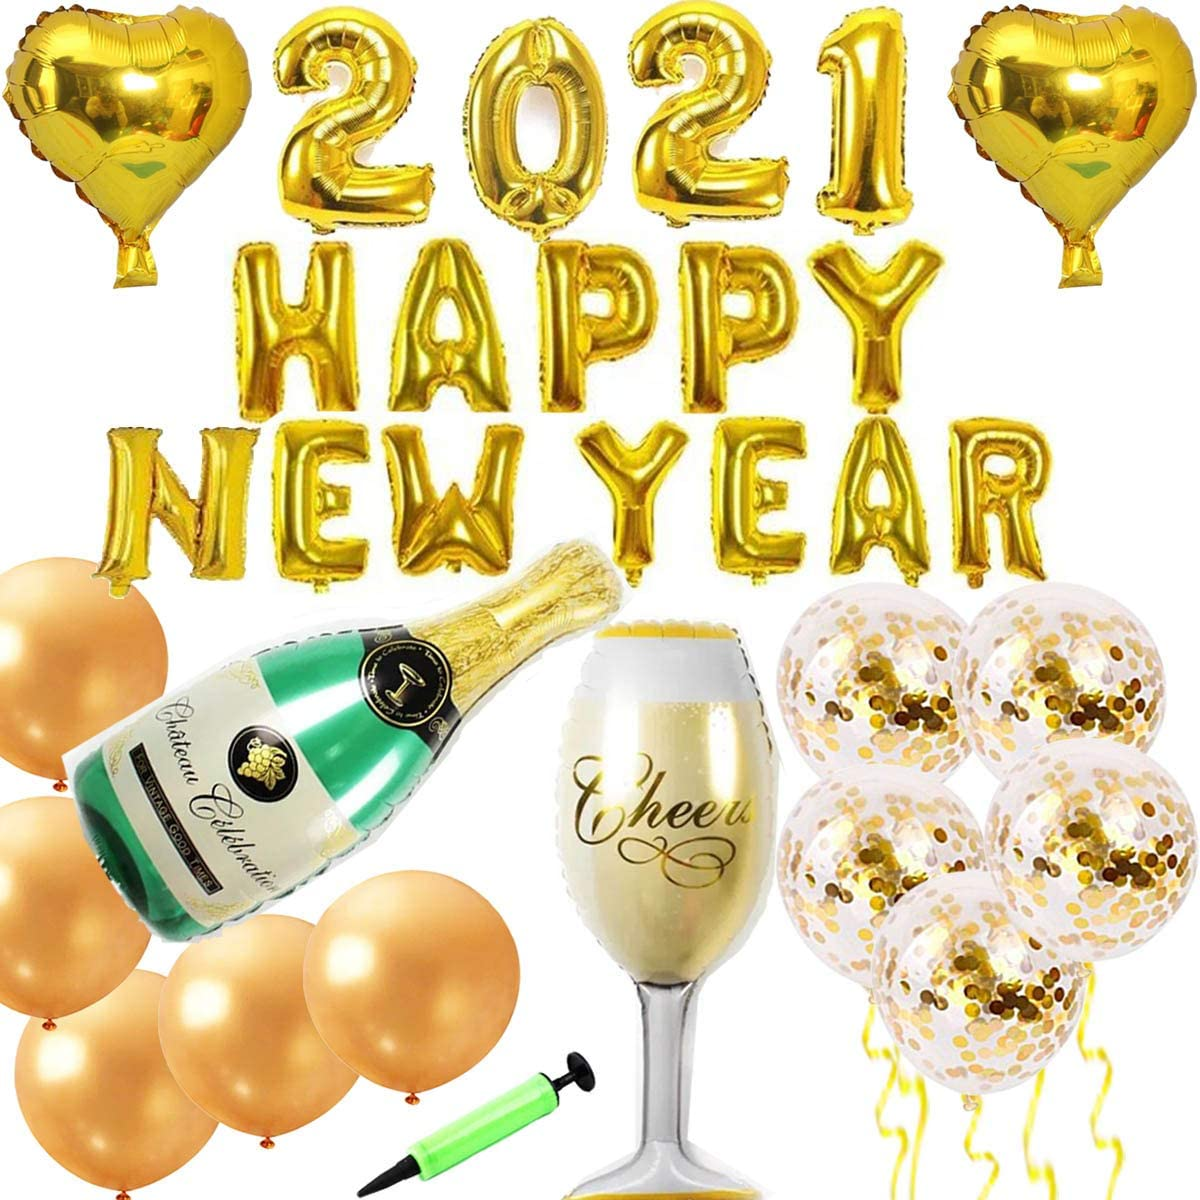 2021 Happy New Year Black Foil Balloons Wine Bottle Balloon New Year Party Decor